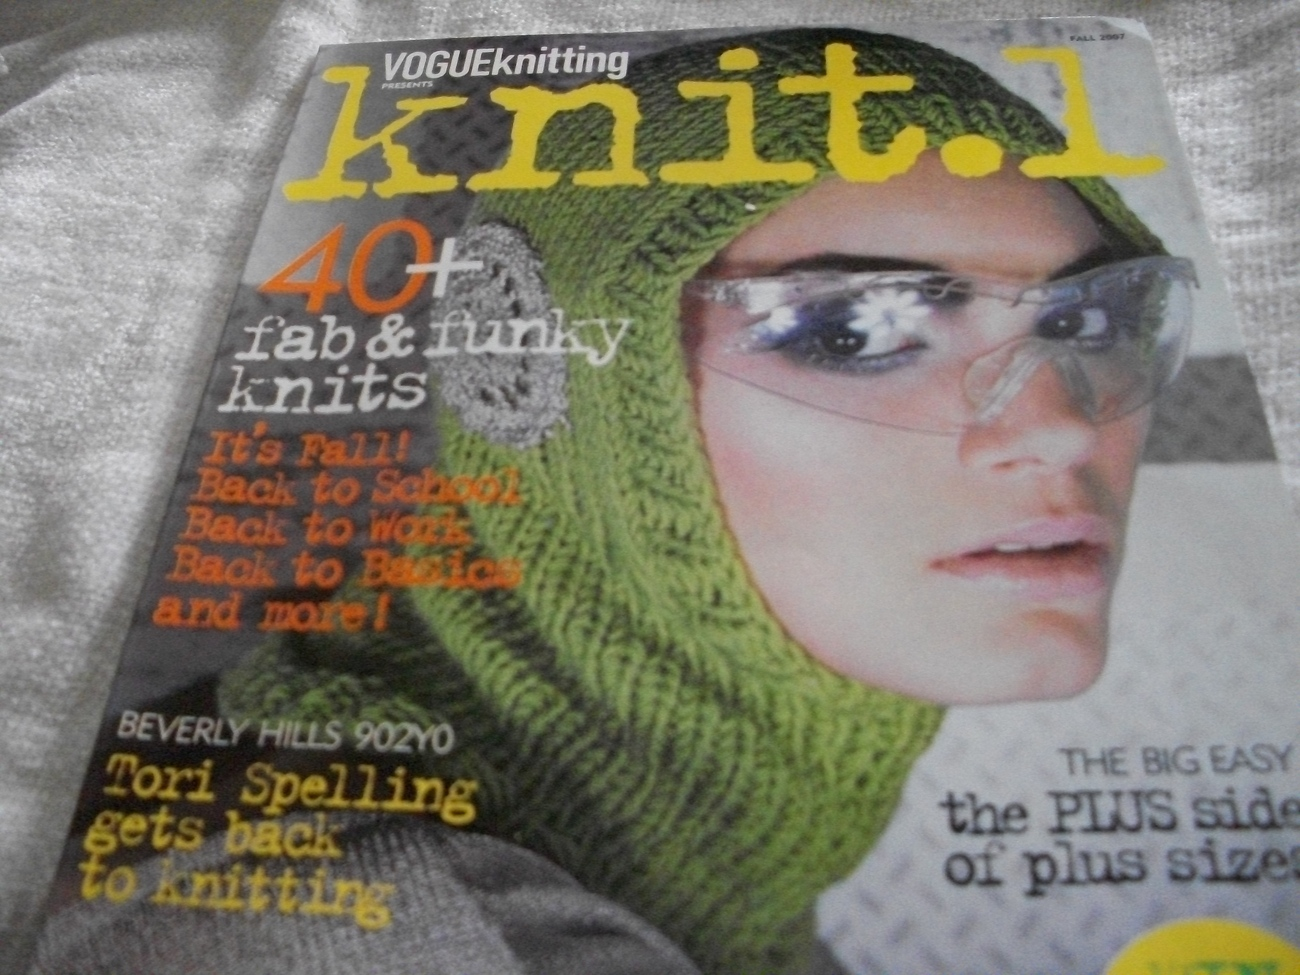 Vogue Knitting Knit.1 Fall 2007 Magazine